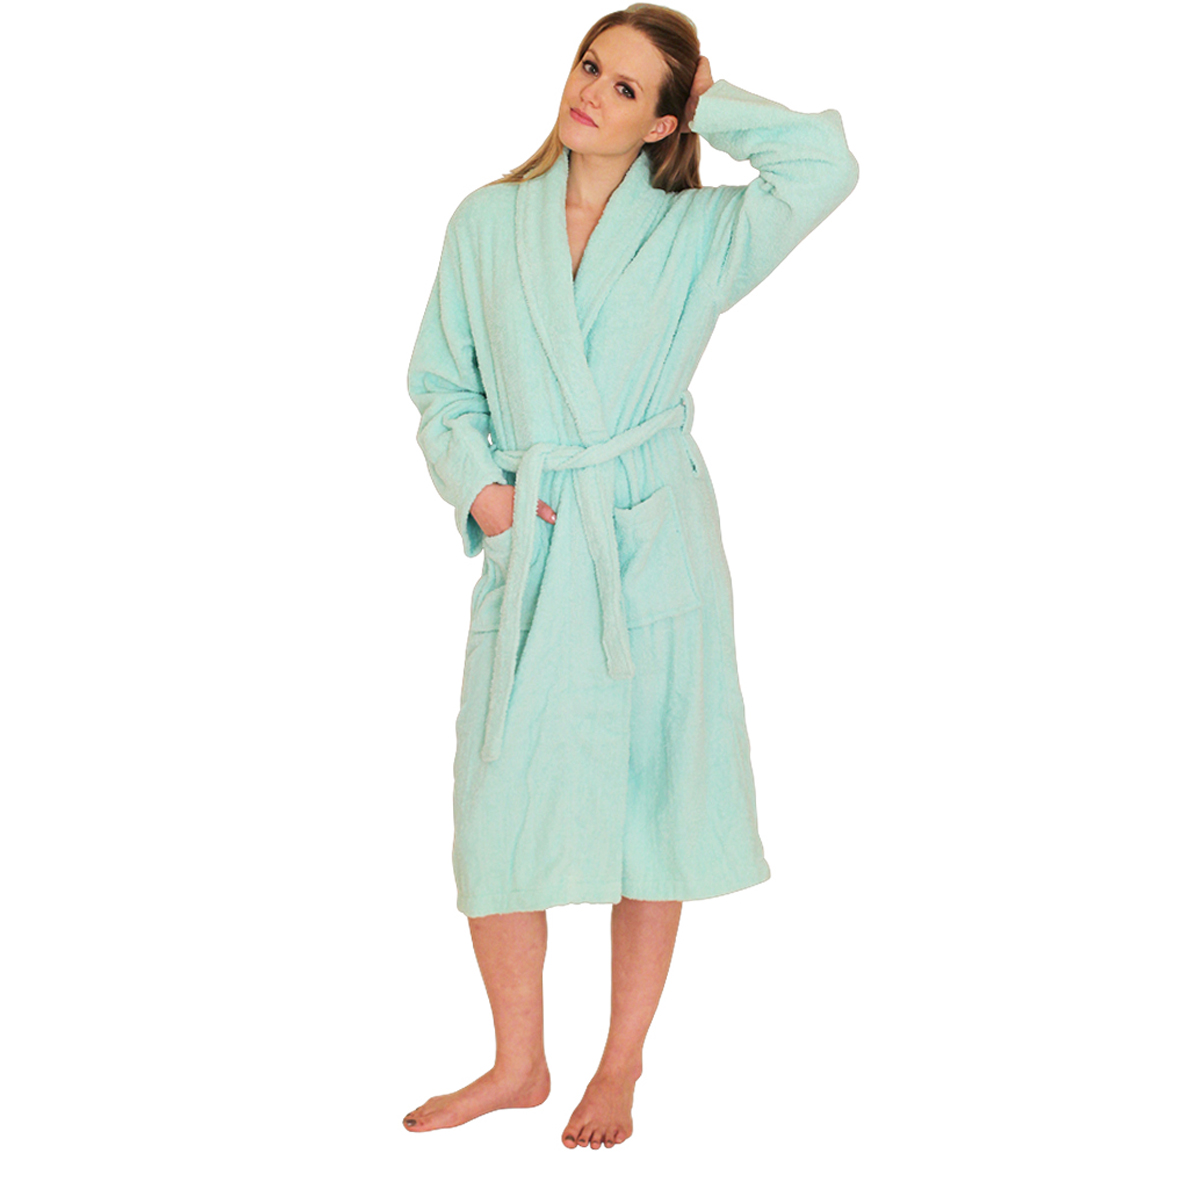 Bathrobes Terry cloth robes for women from  15 Spa Hotel quality ... 86e7fc391